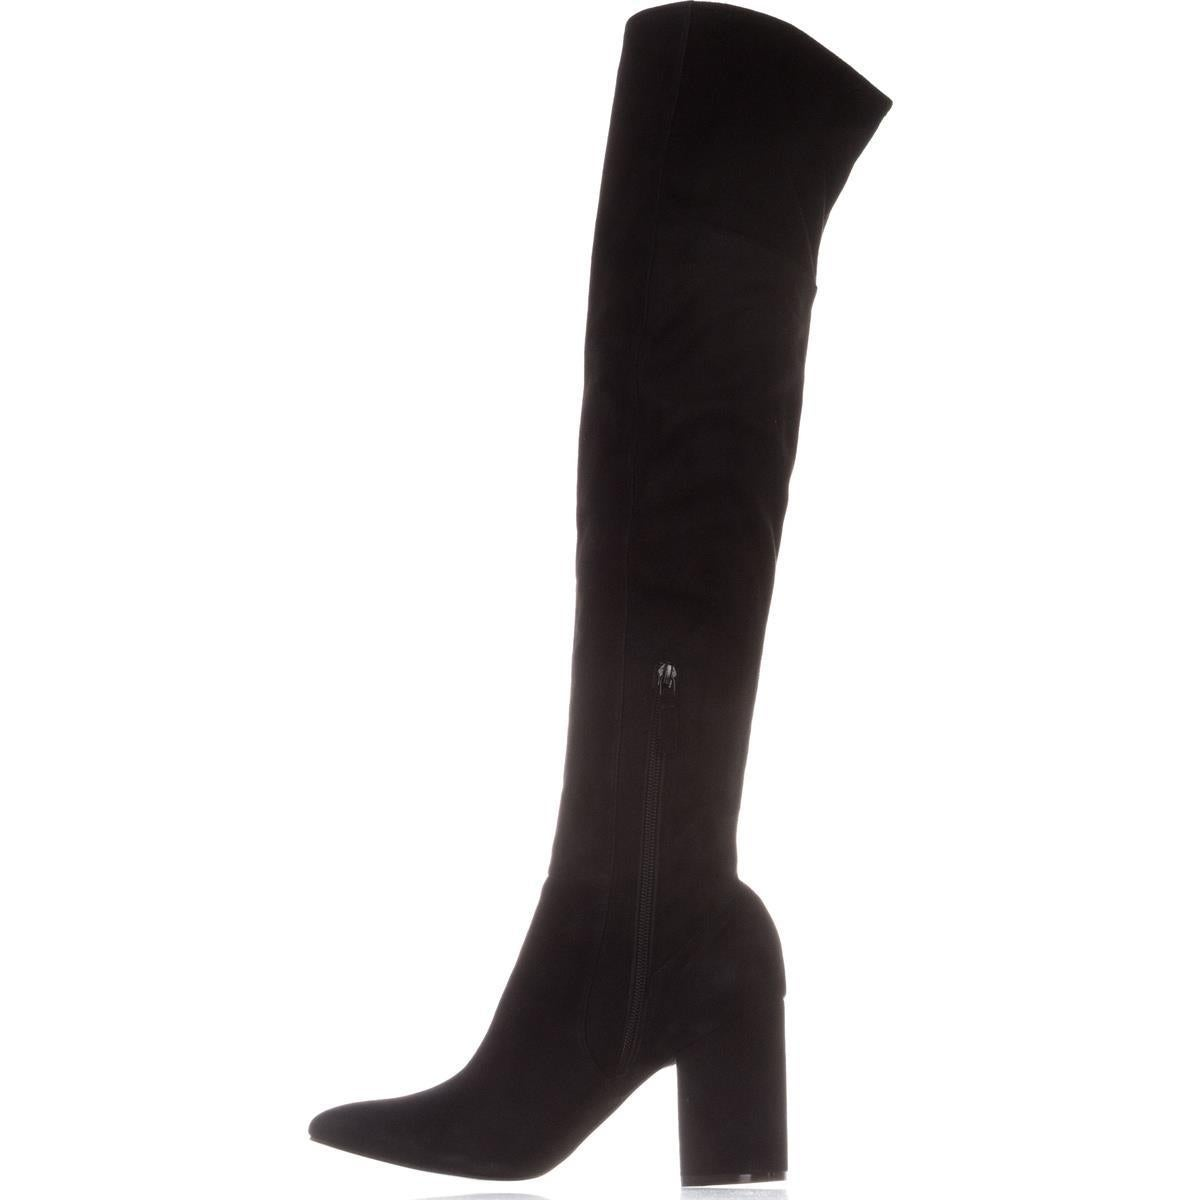 6ed5c73eed7 Shop Cole Haan Darla Over-The-Knee Boots